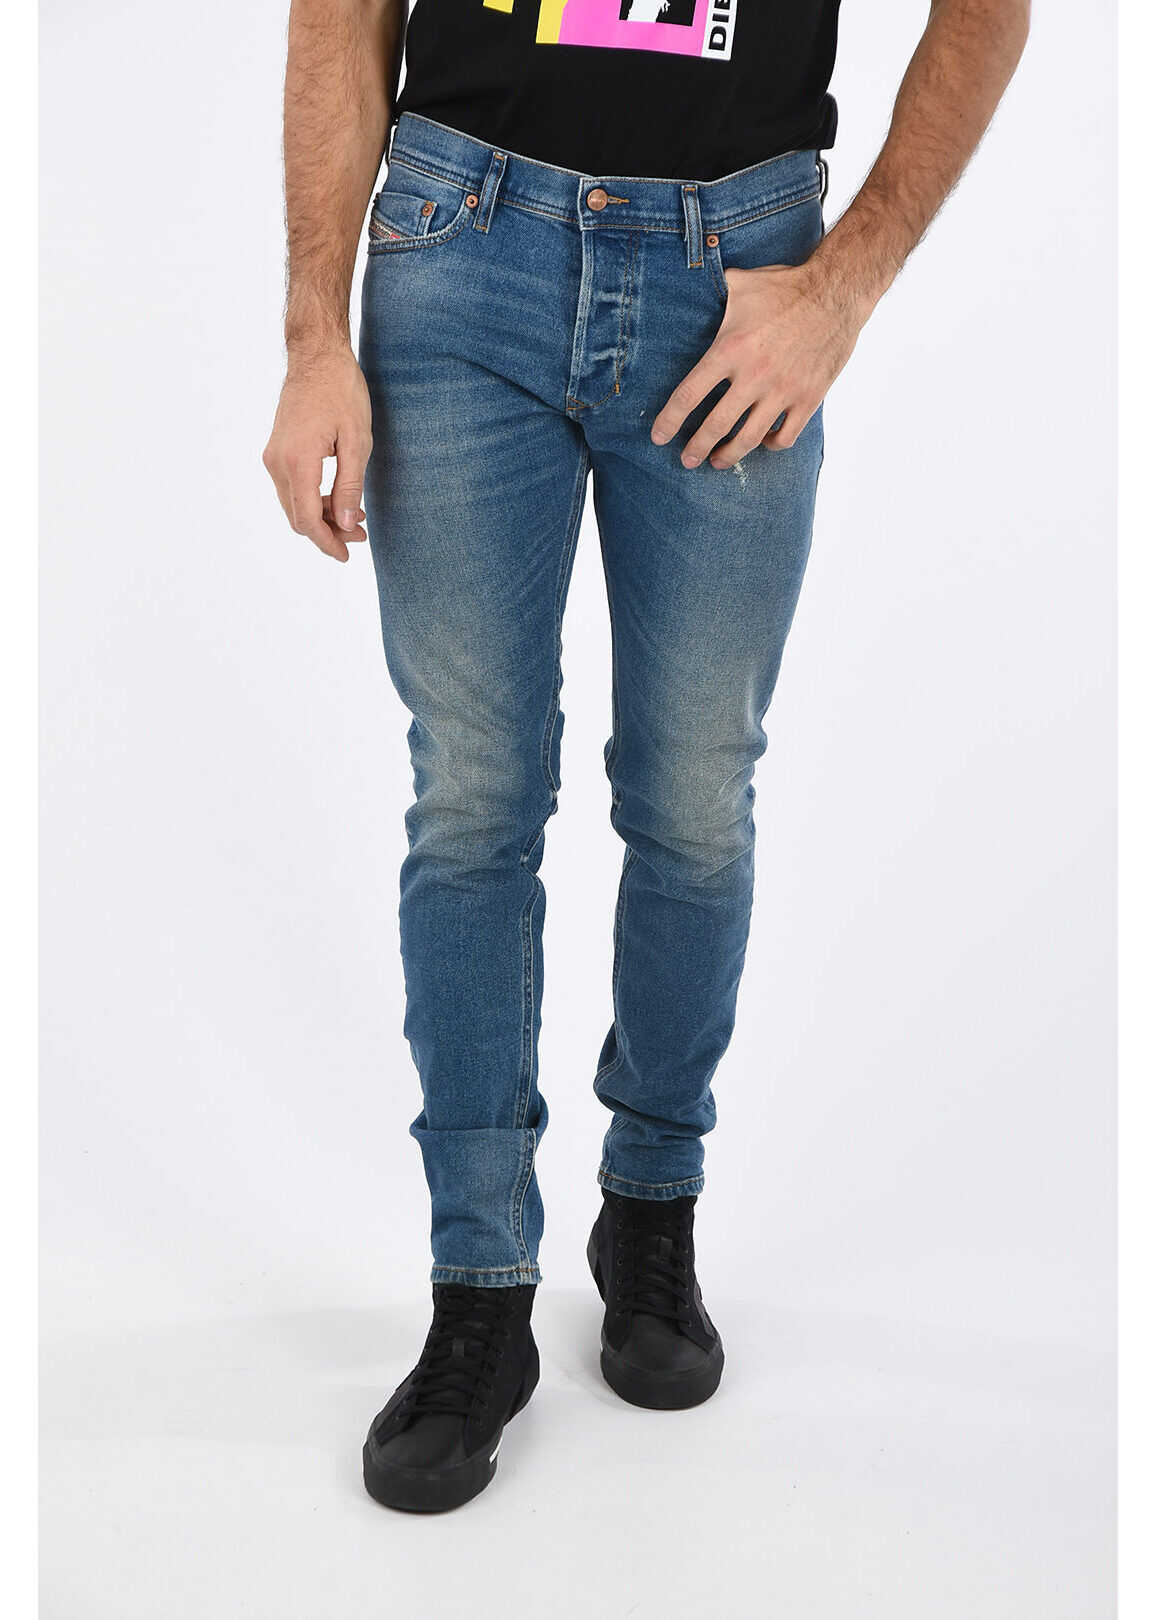 Diesel 17cm Slim Fit TEPPHAR Jeans L32 BLUE imagine